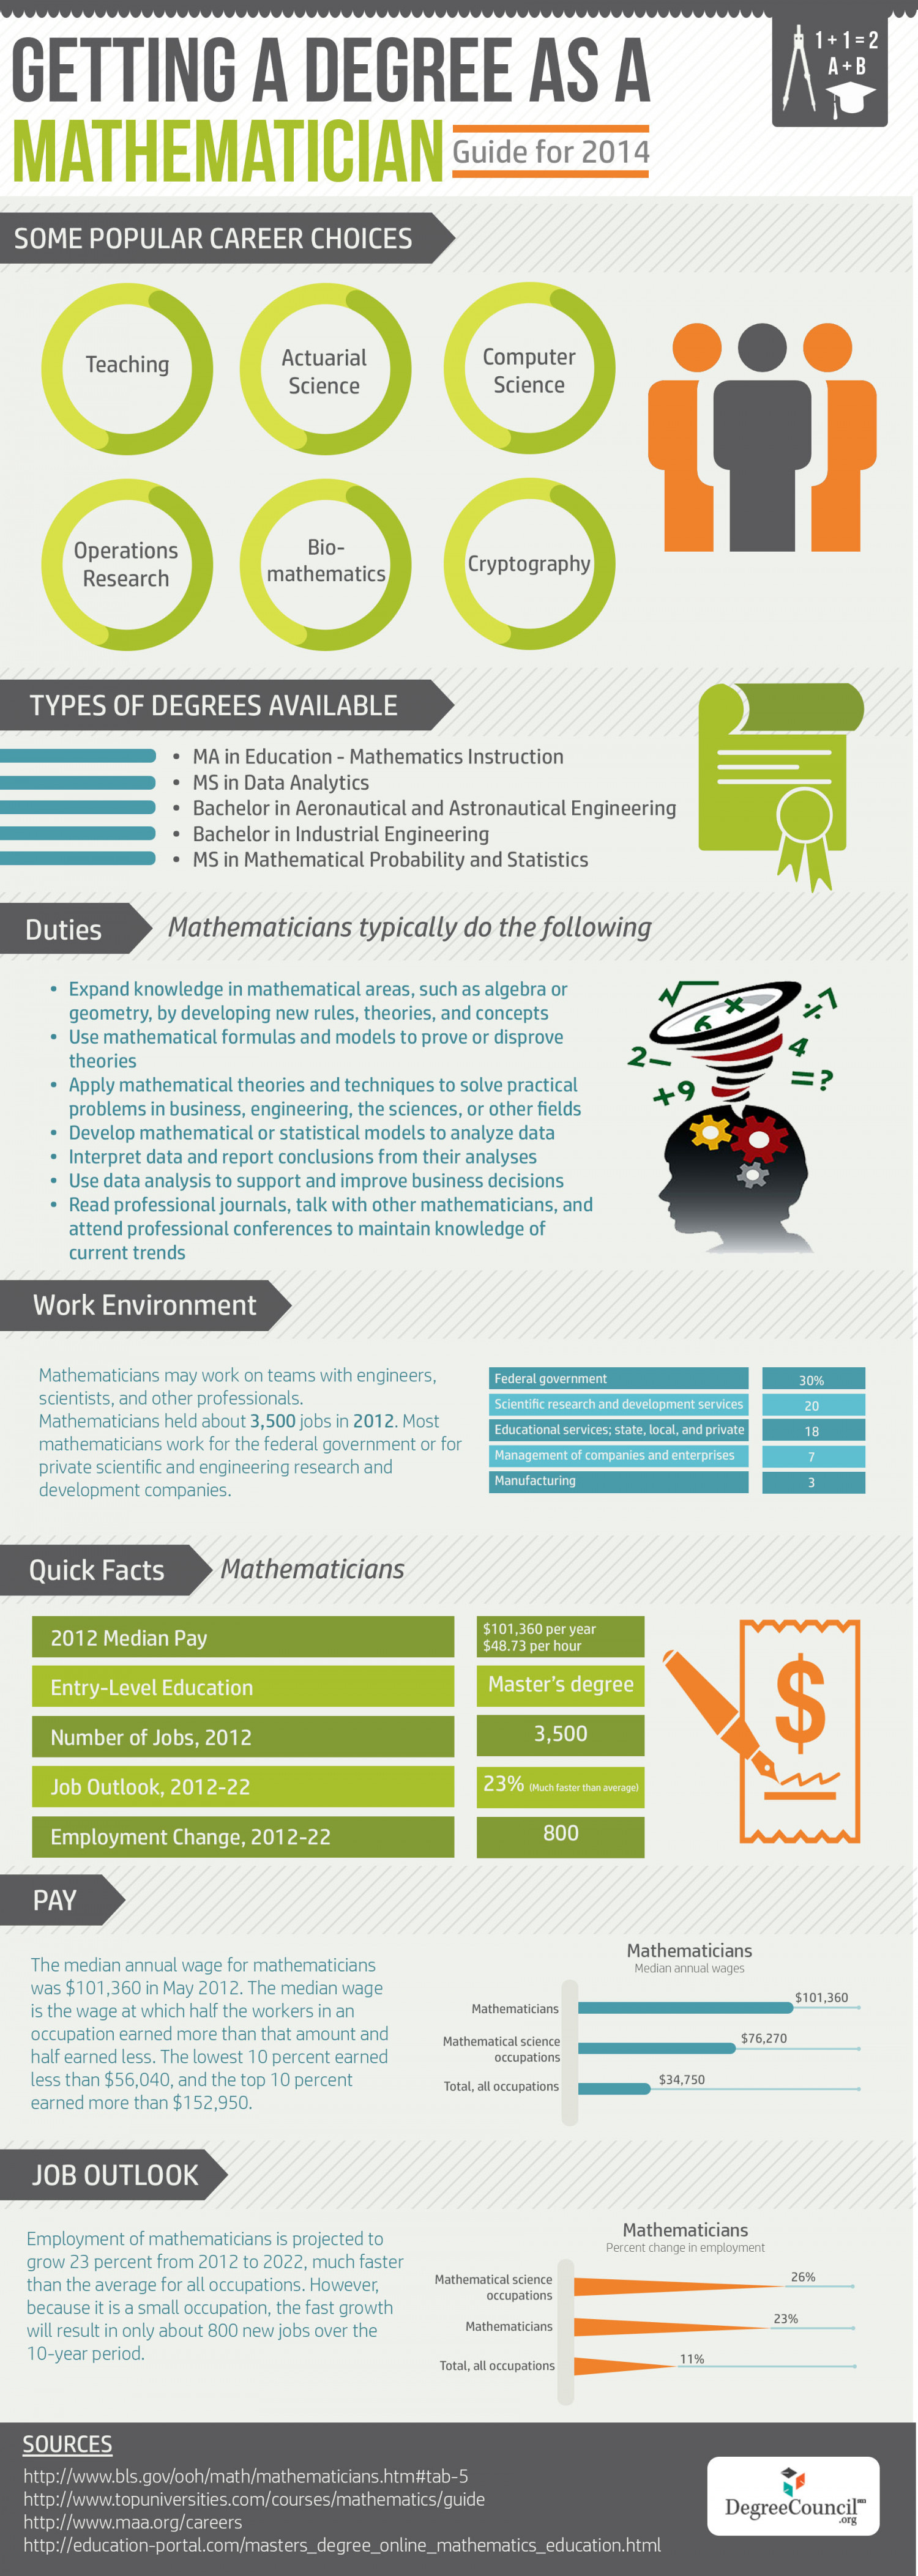 Mathematics Degree - Getting a Degree as a Mathematician: a Guide for 2014 Infographic